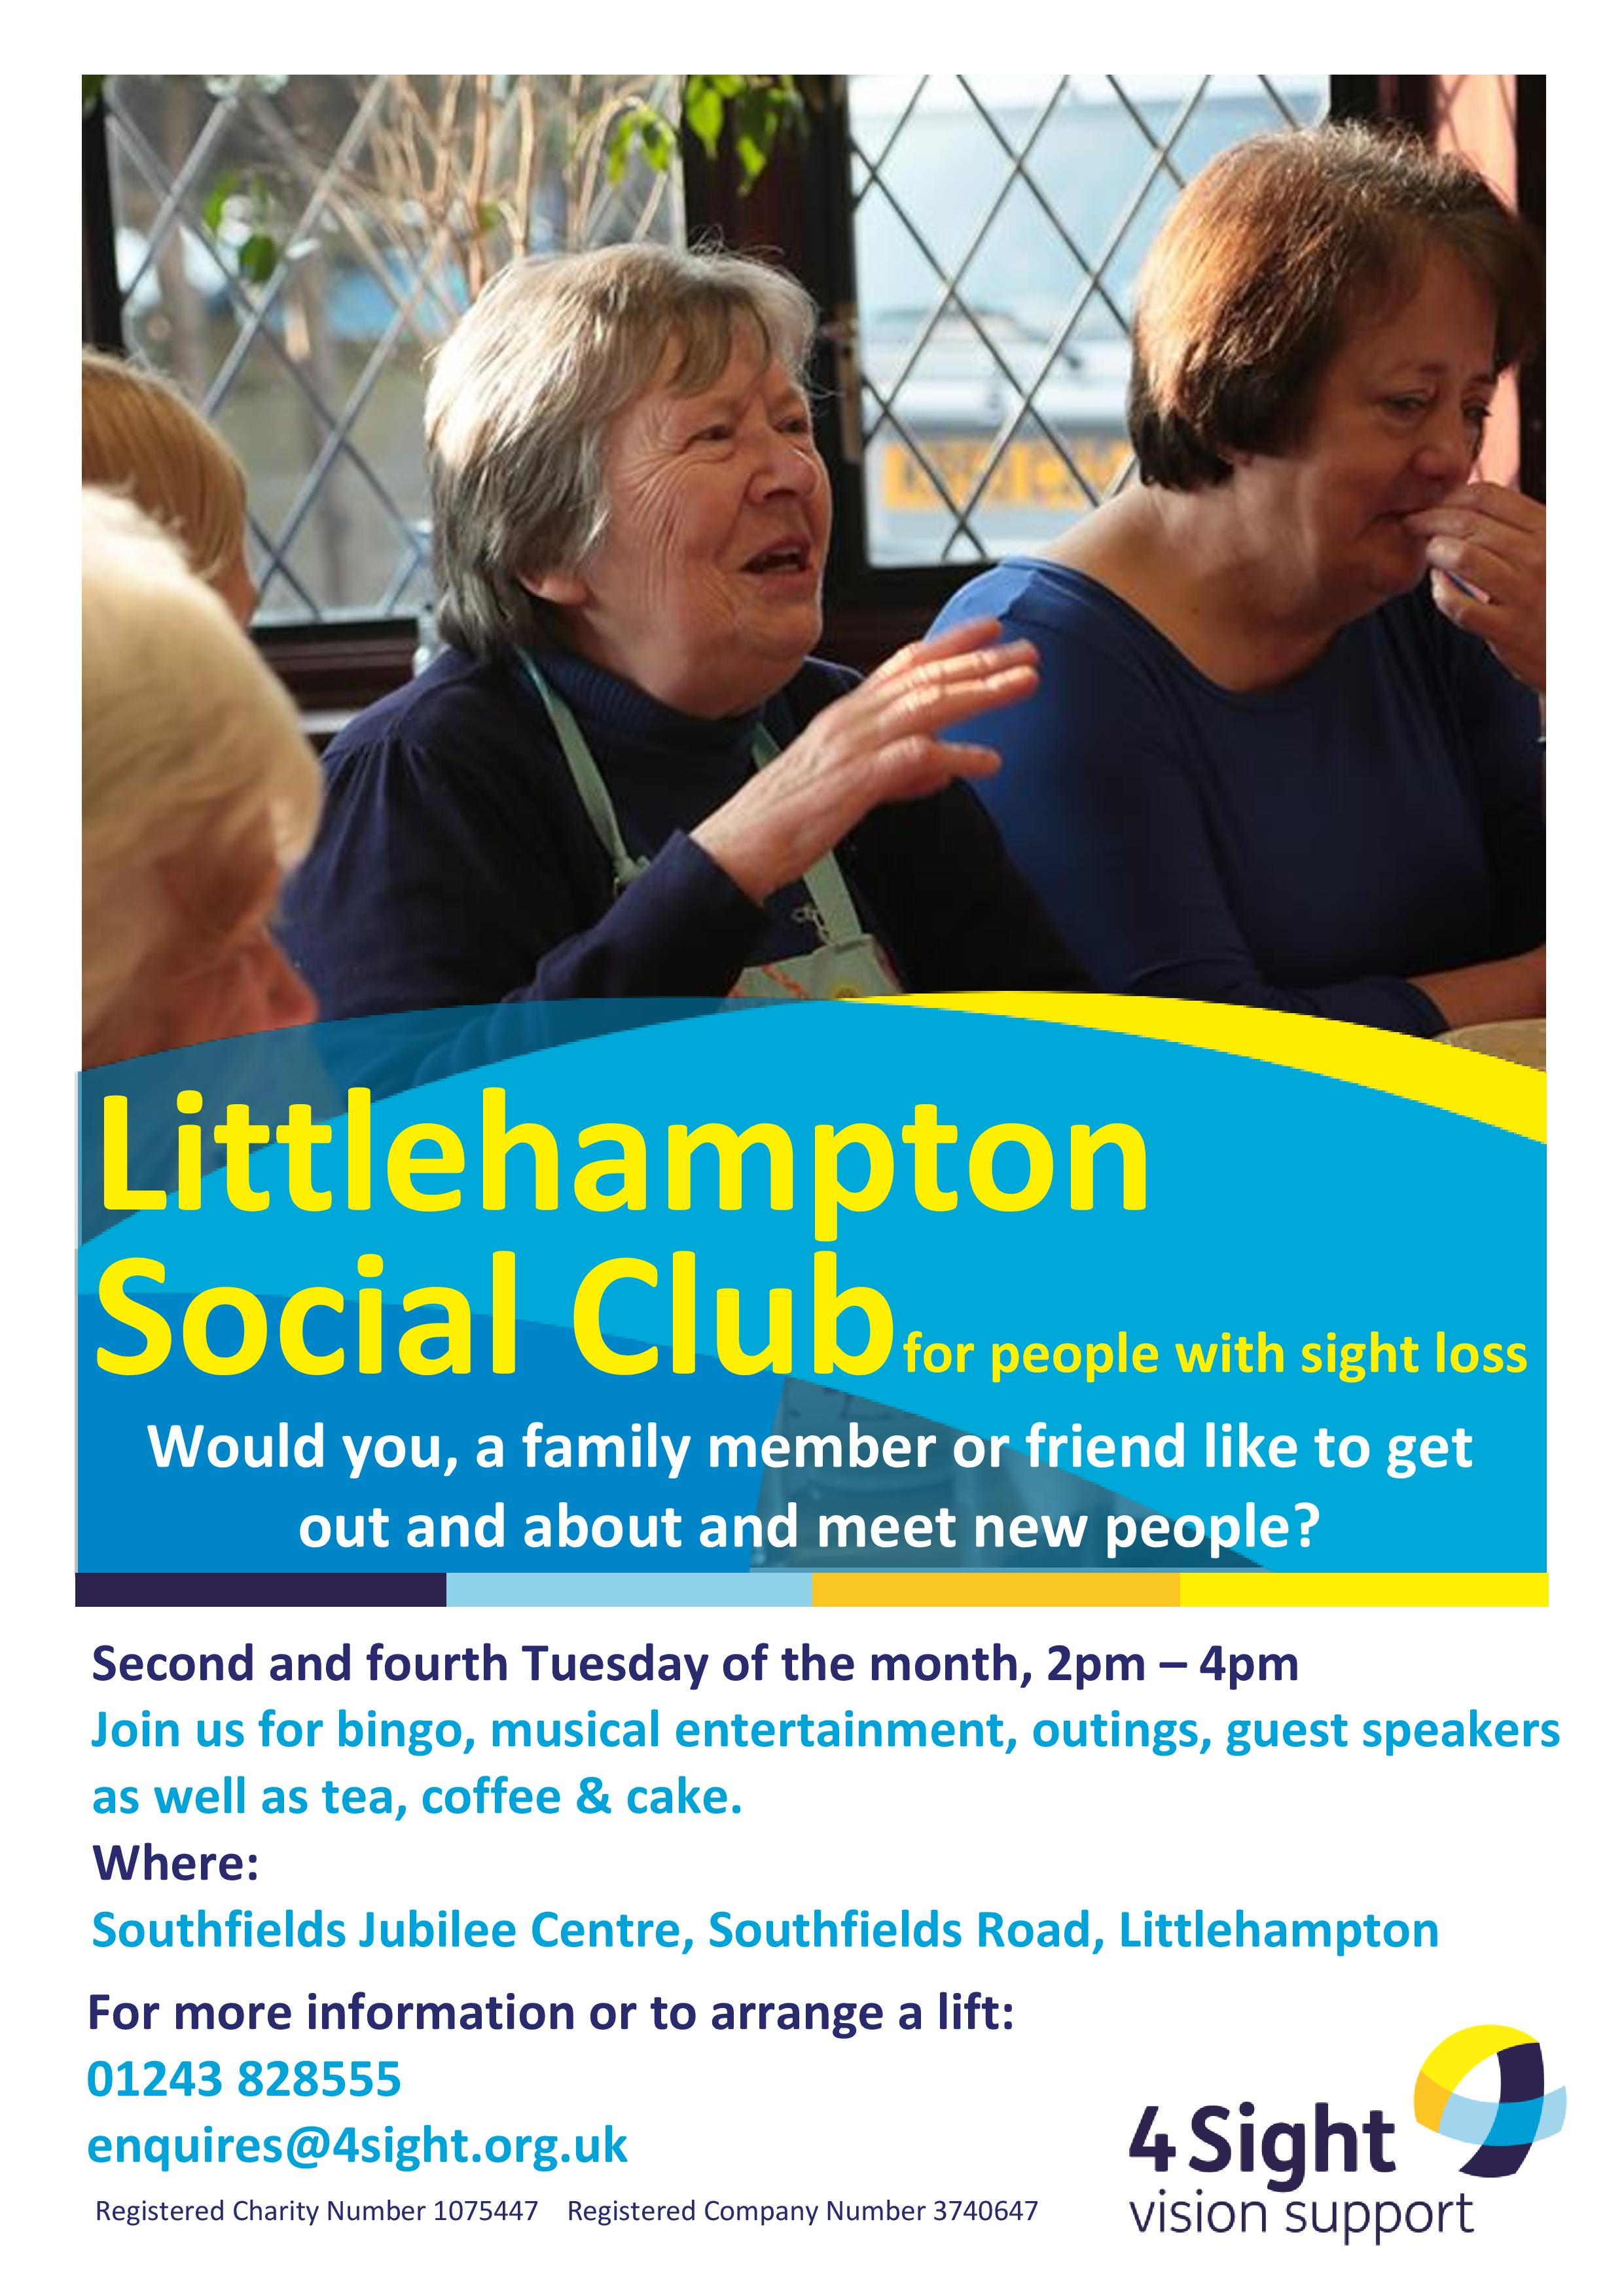 Littlehampton Social Club